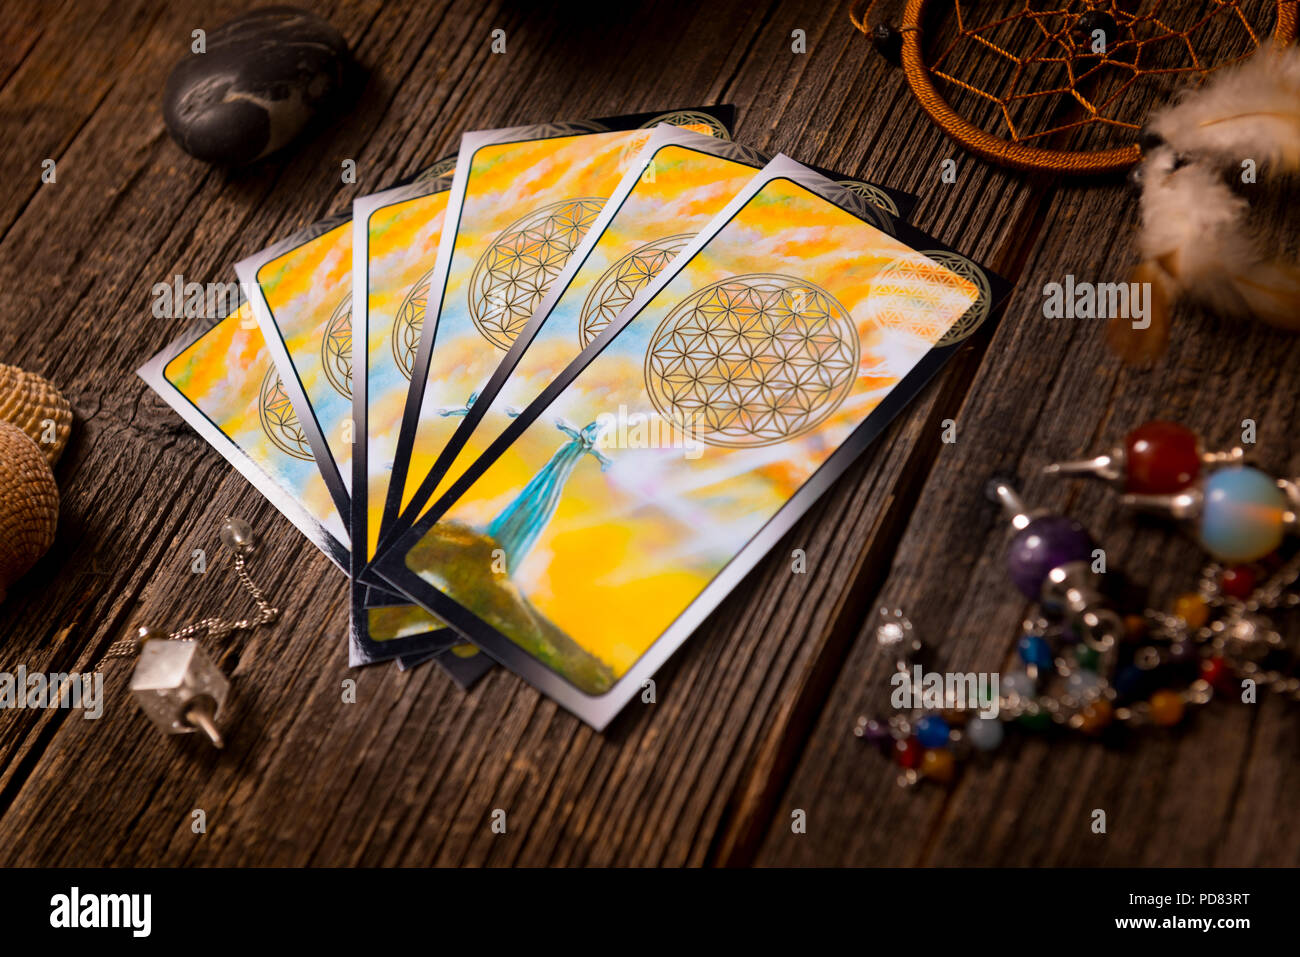 Tarot cards and other fortune teller's accessories Stock Photo